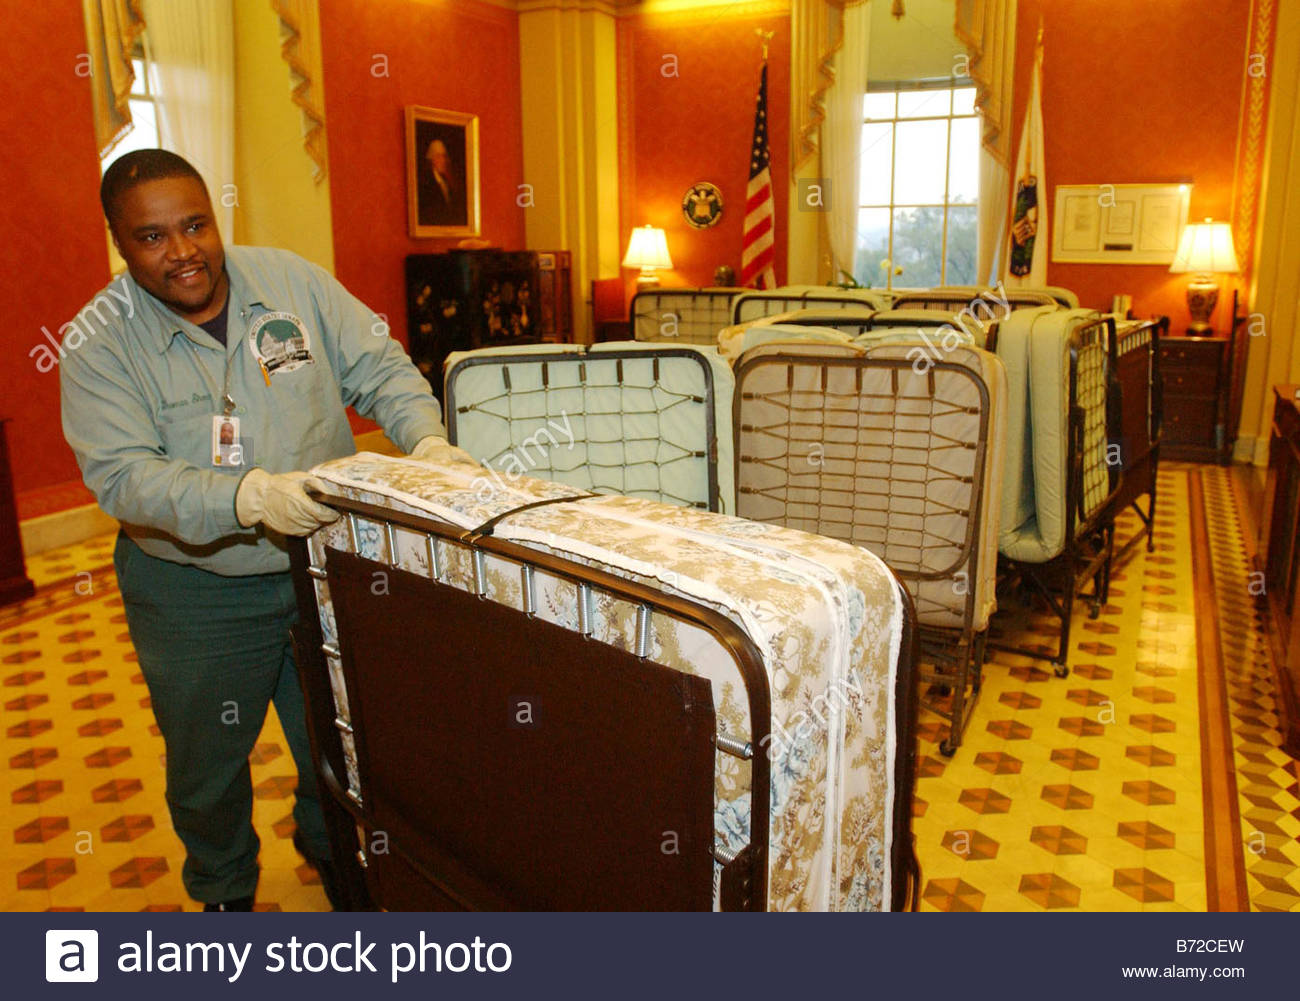 11 12 03 30 HOUR DEBATE IN SENATE ON JUDICIAL NOMINATIONS Workers gather cots in the Strom Thurmond Room to deliver - Stock Image